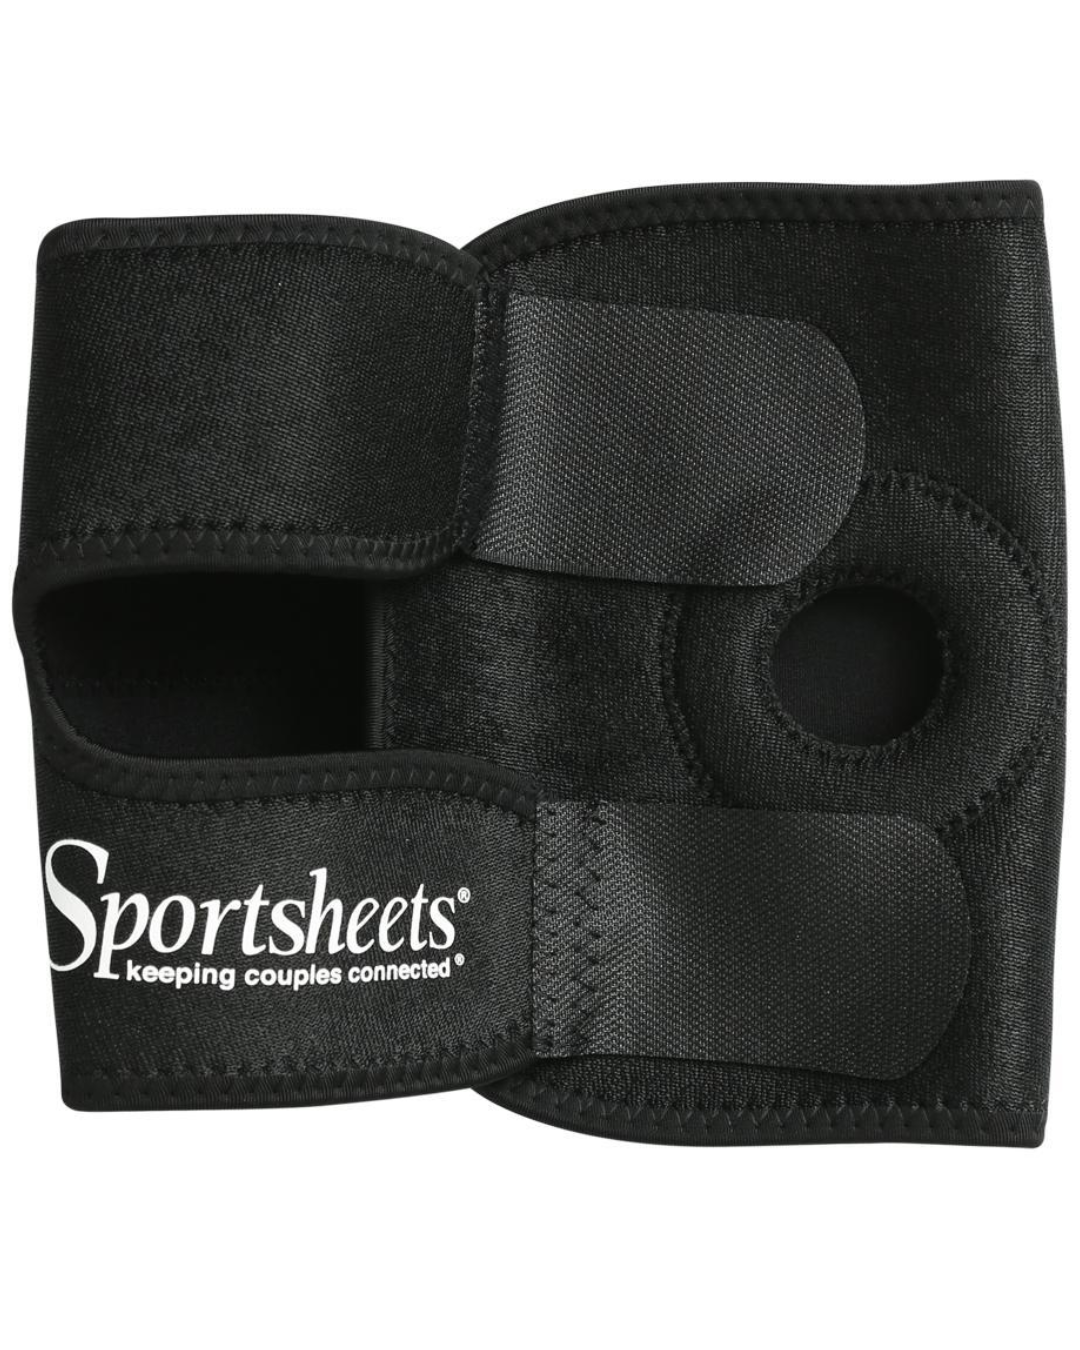 Strap On Thigh Harness by Sportsheets -  Black